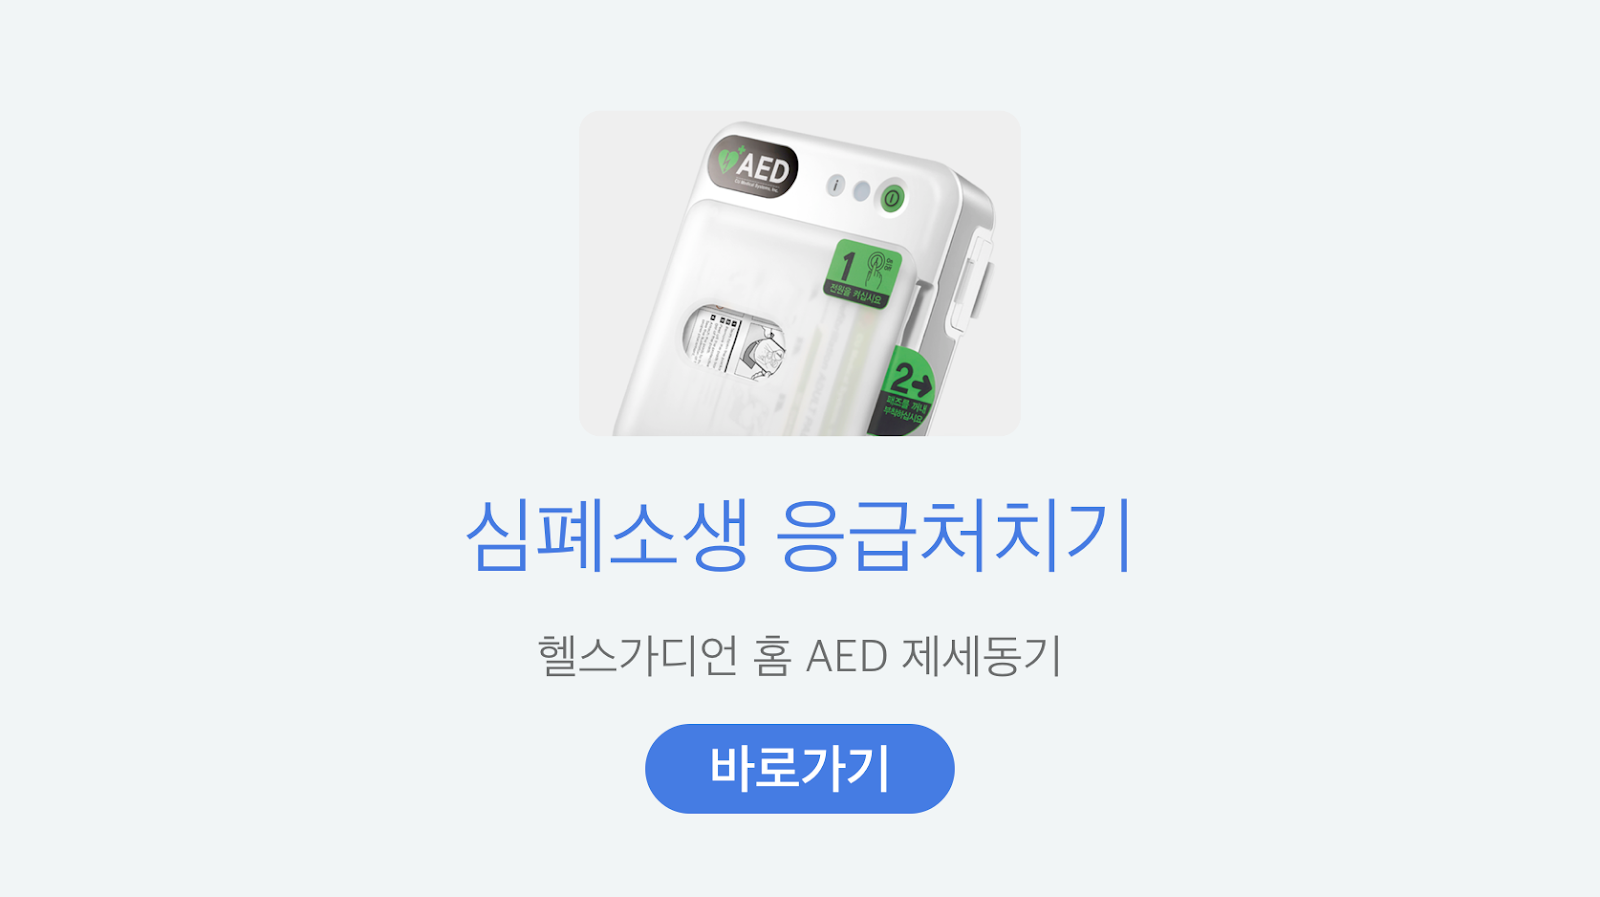 http://homeaed.co.kr/